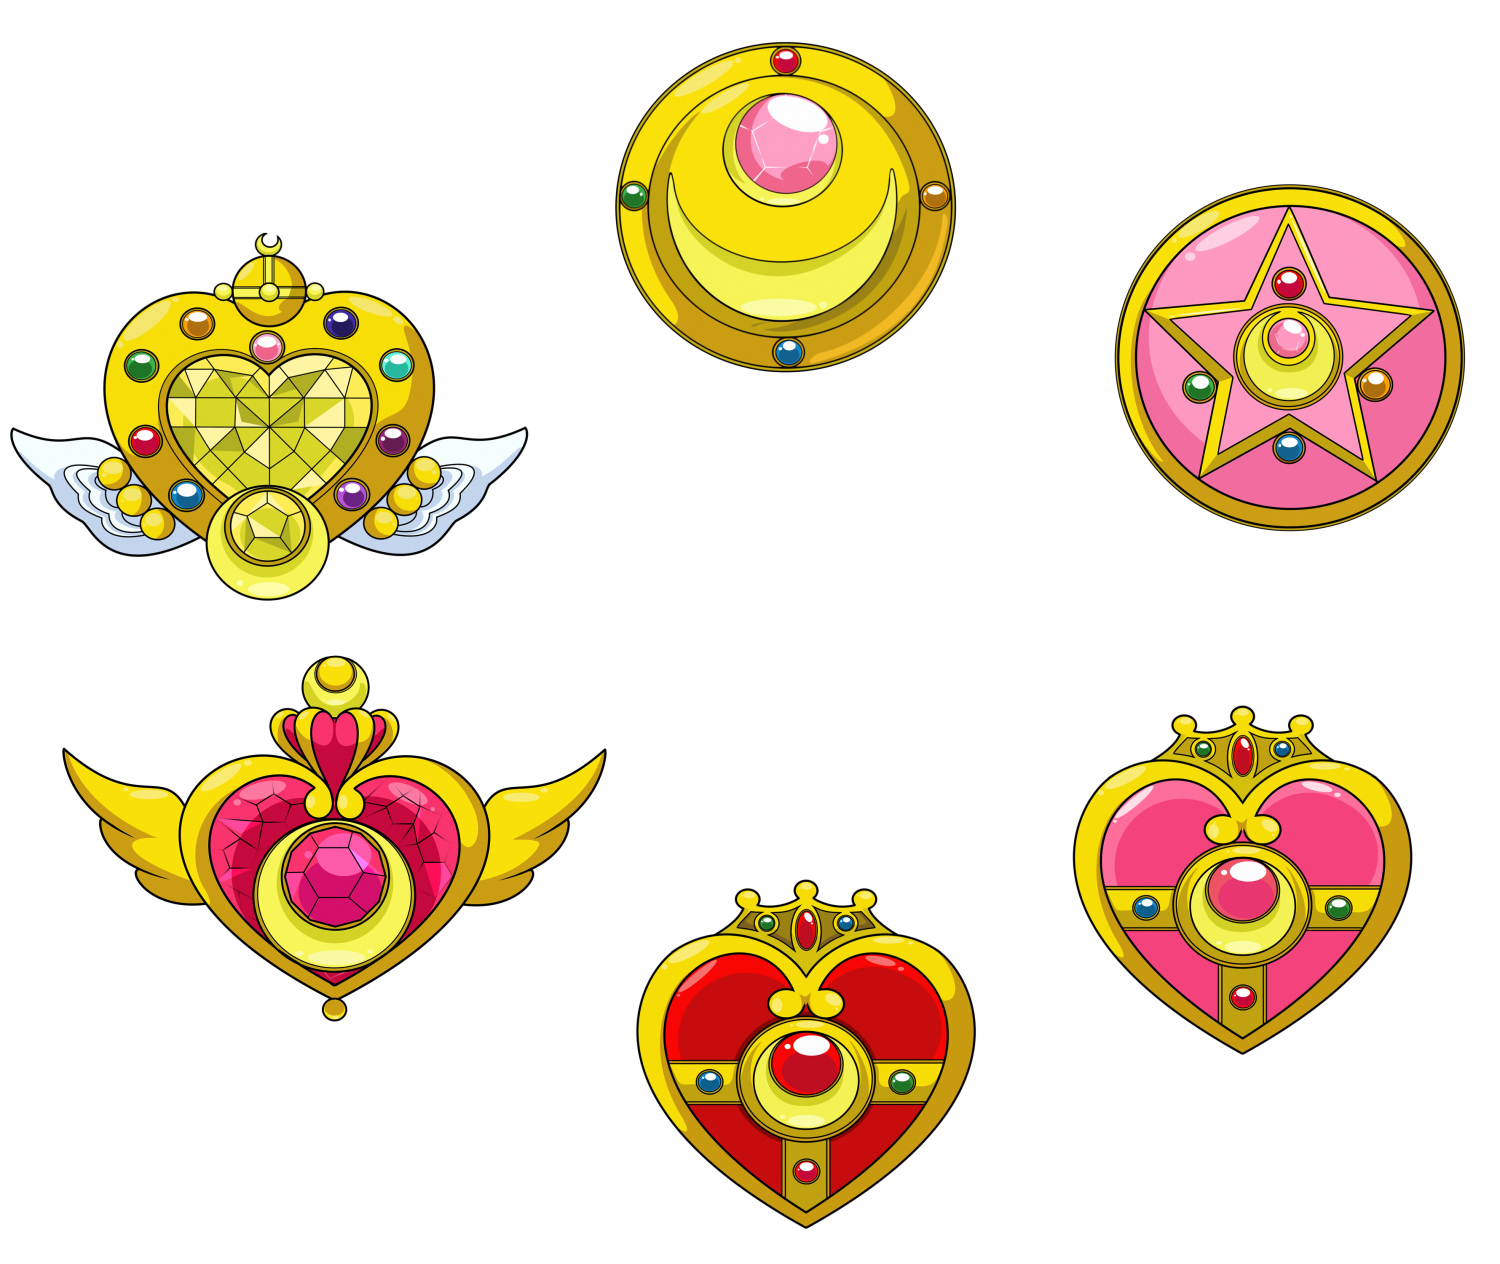 Sailor moon and scouts favourites by kermitgirl08 on deviantart lumi mae 2040 160 sailor moon extra broche makeup by jackowcastillo biocorpaavc Images